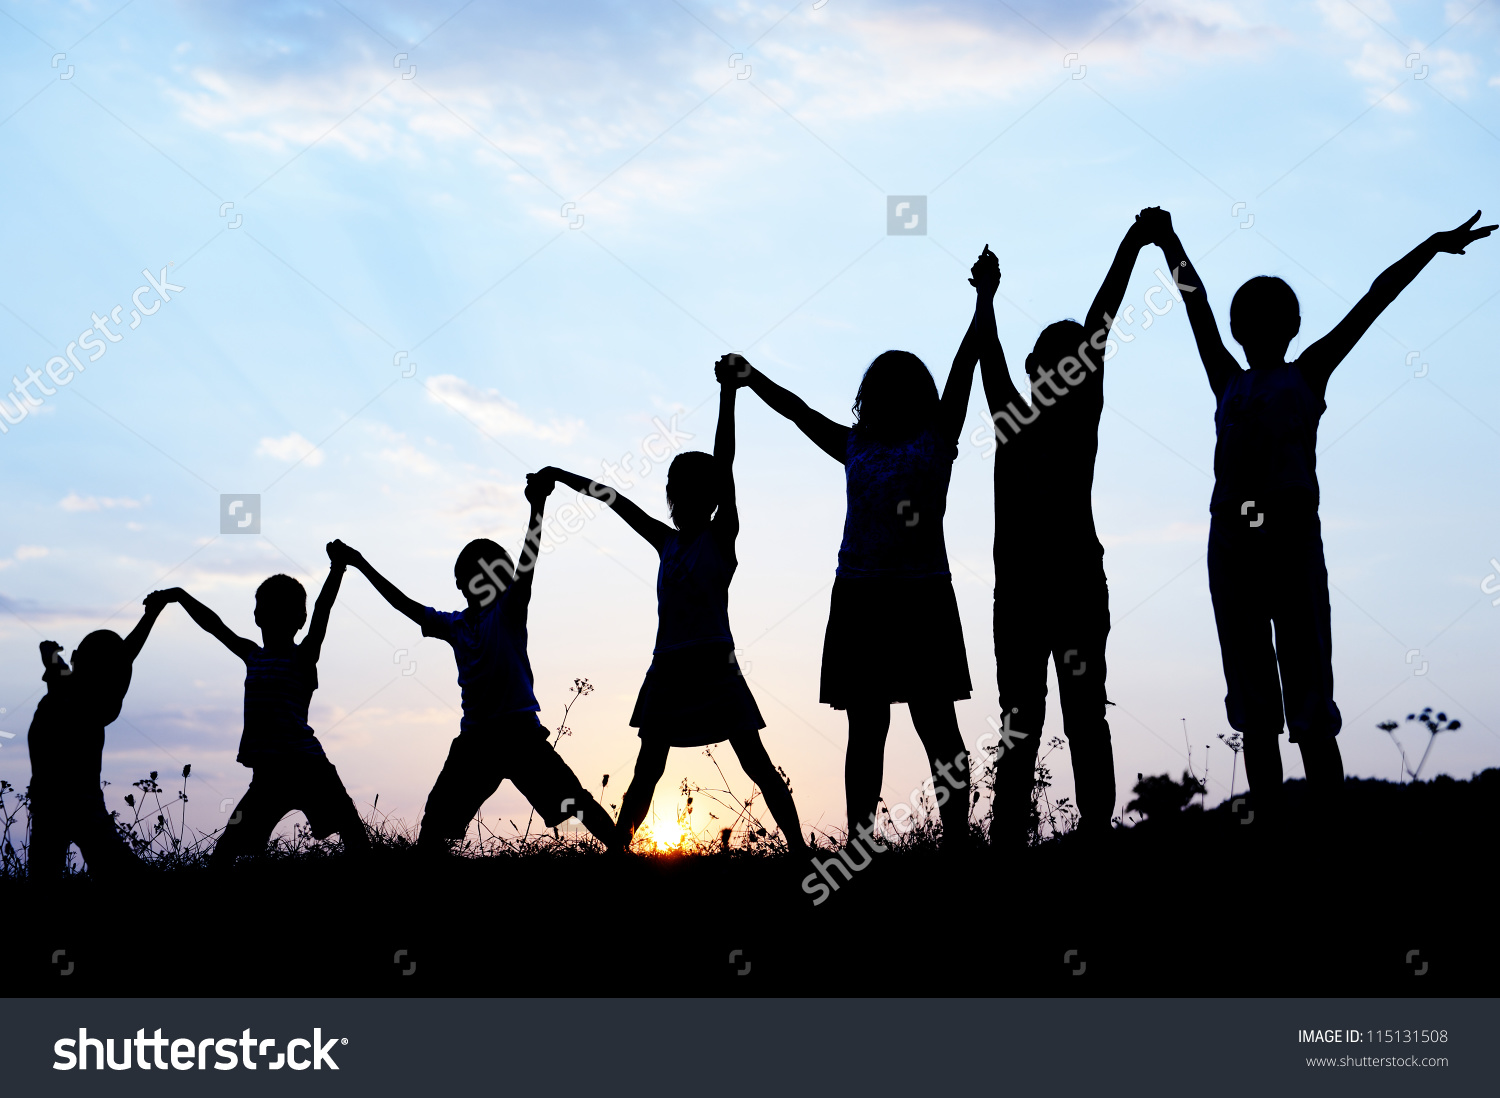 Children Silhouettes Holding Hands Stock Photo 115131508.